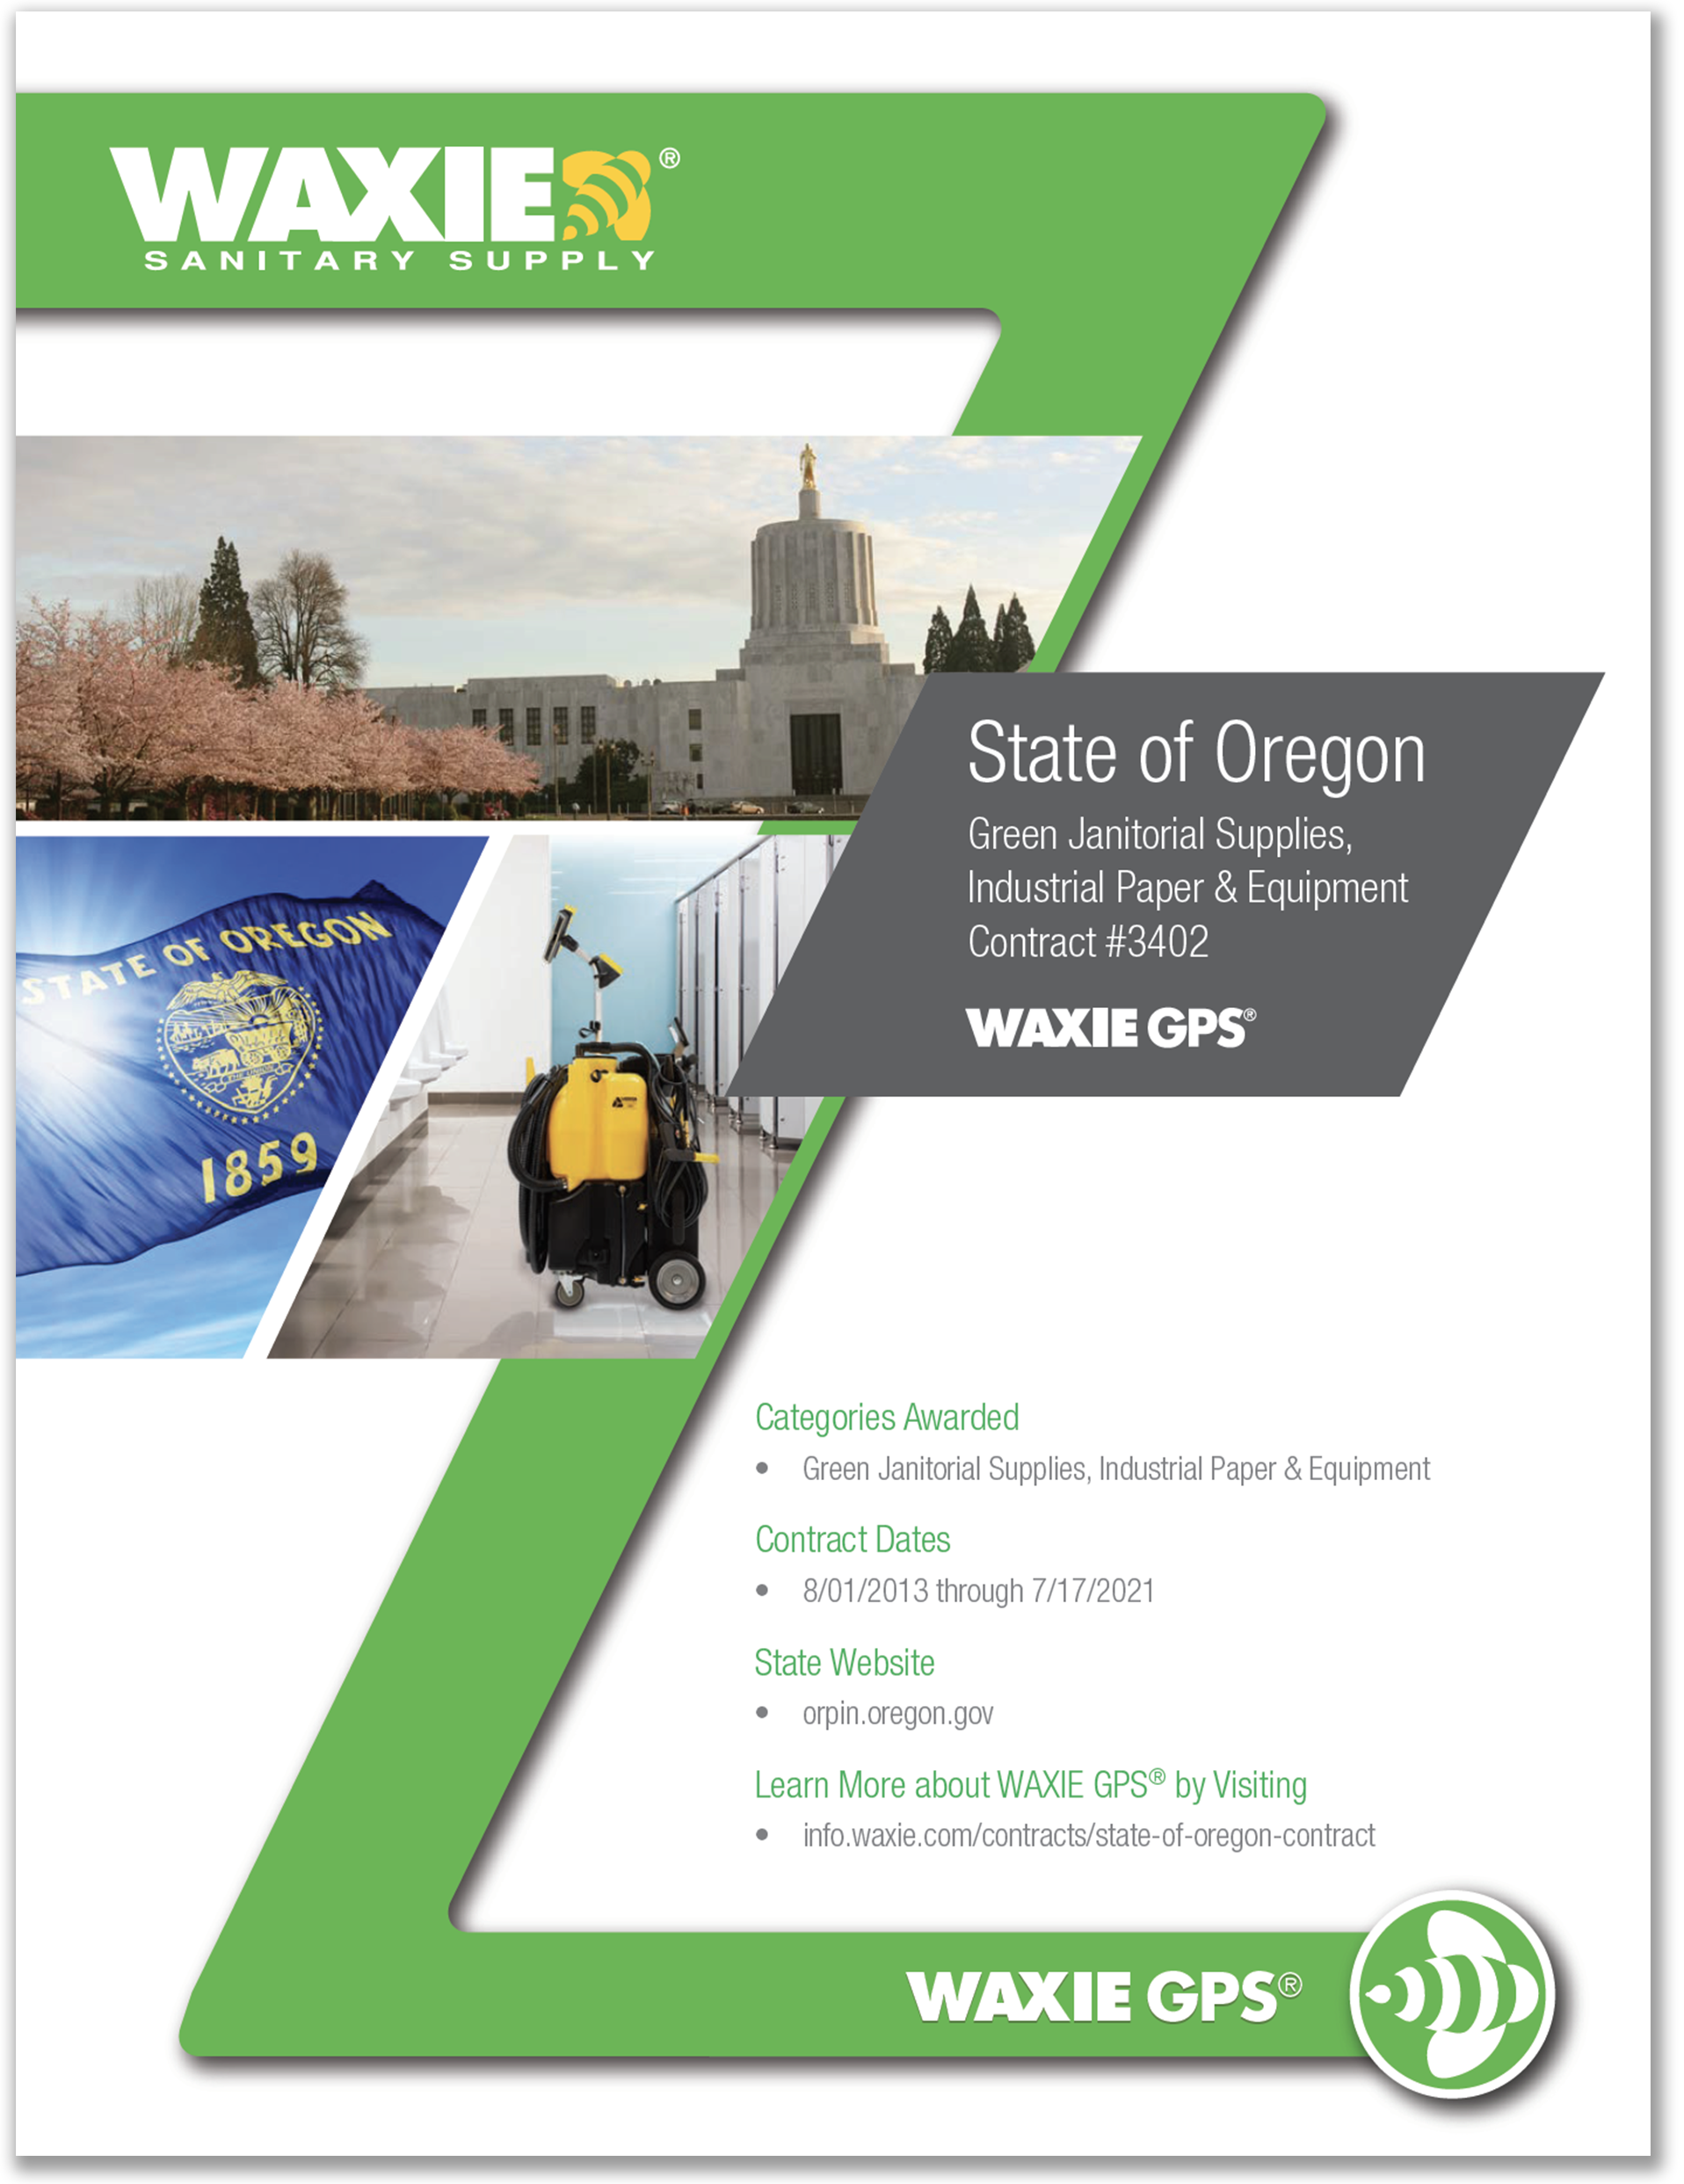 state-of-oregon-cover-image